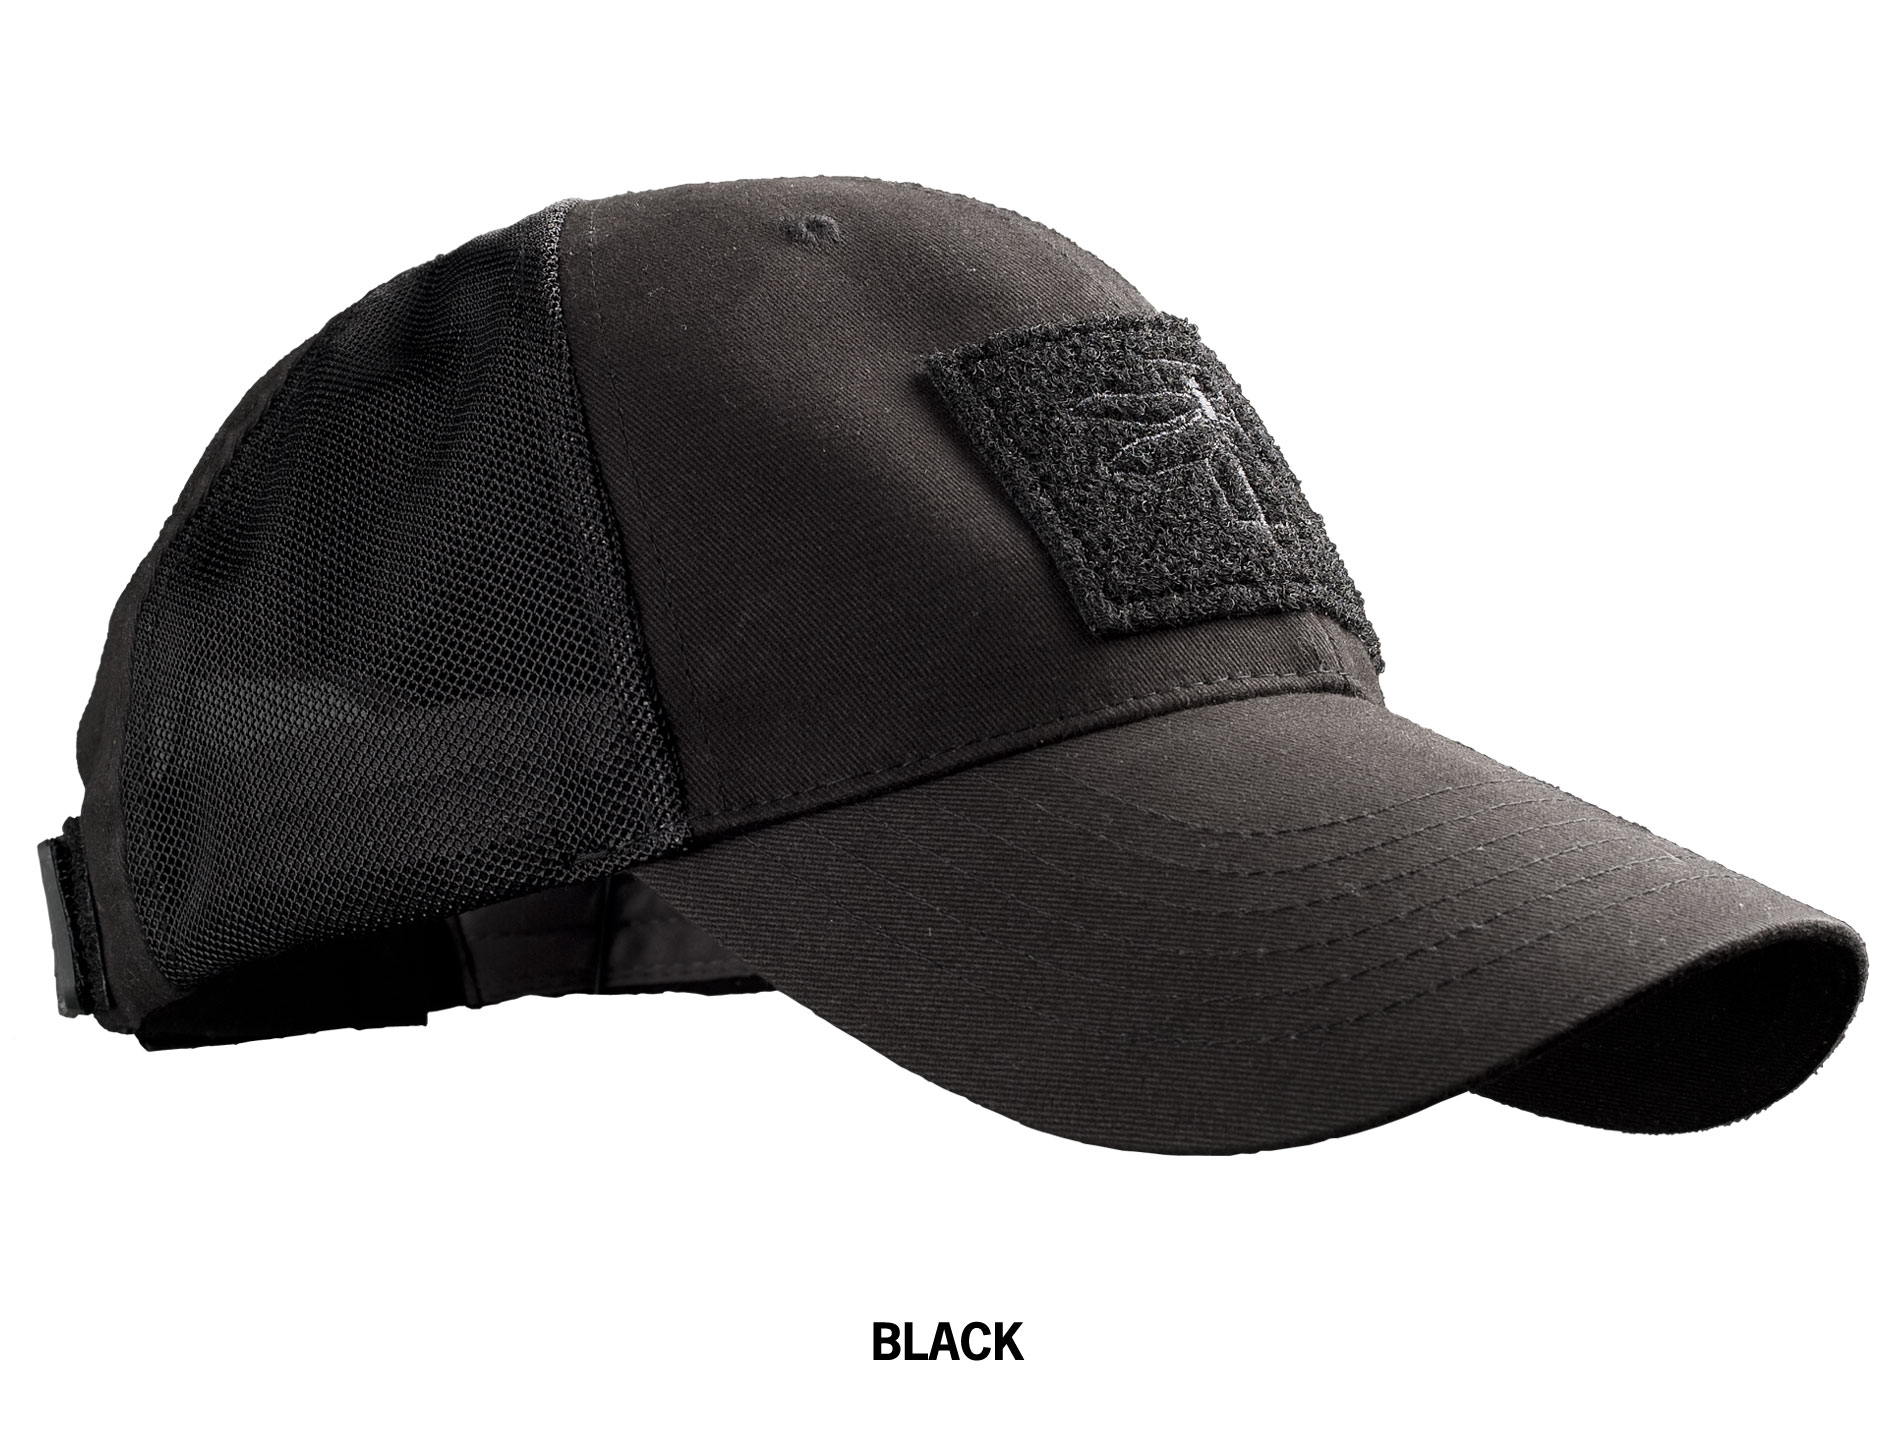 Haley Strategic Troubleshooter Cap in Jet Black with Patch